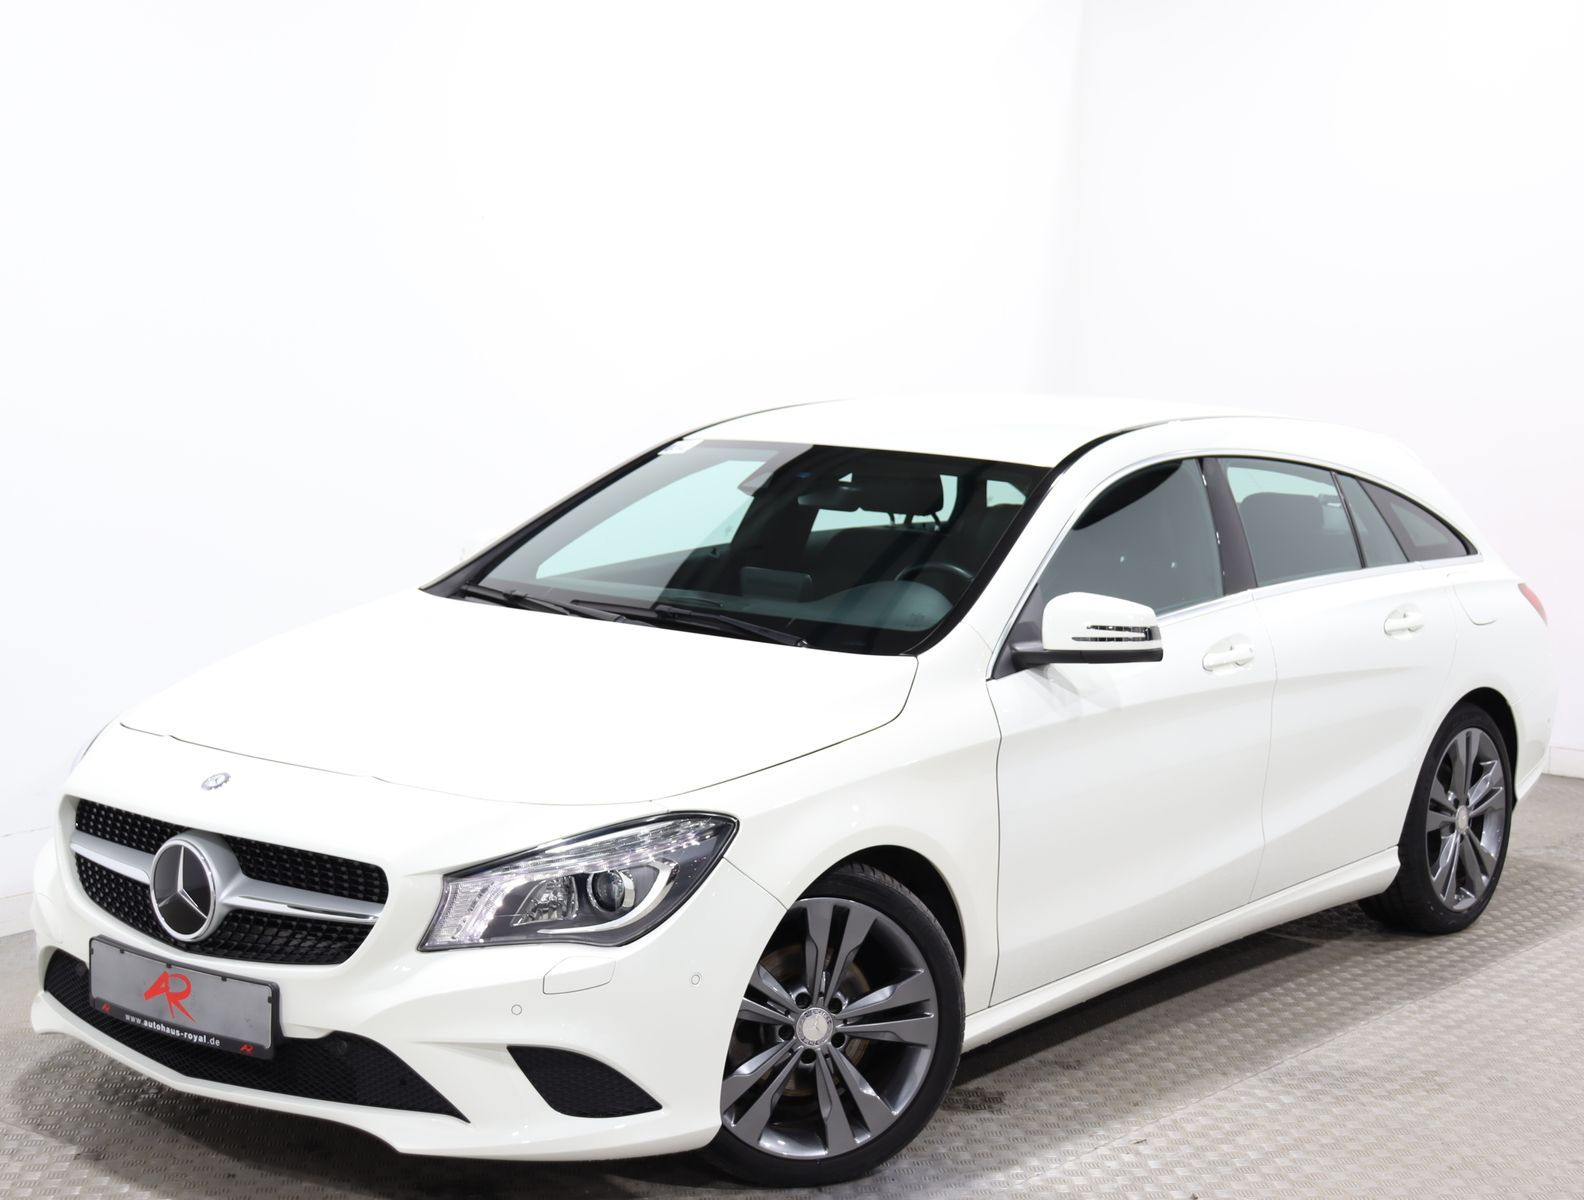 Mercedes-Benz CLA 200 Shooting Brake URBAN DISTRO,DIAMANTGRILL, Jahr 2015, Benzin